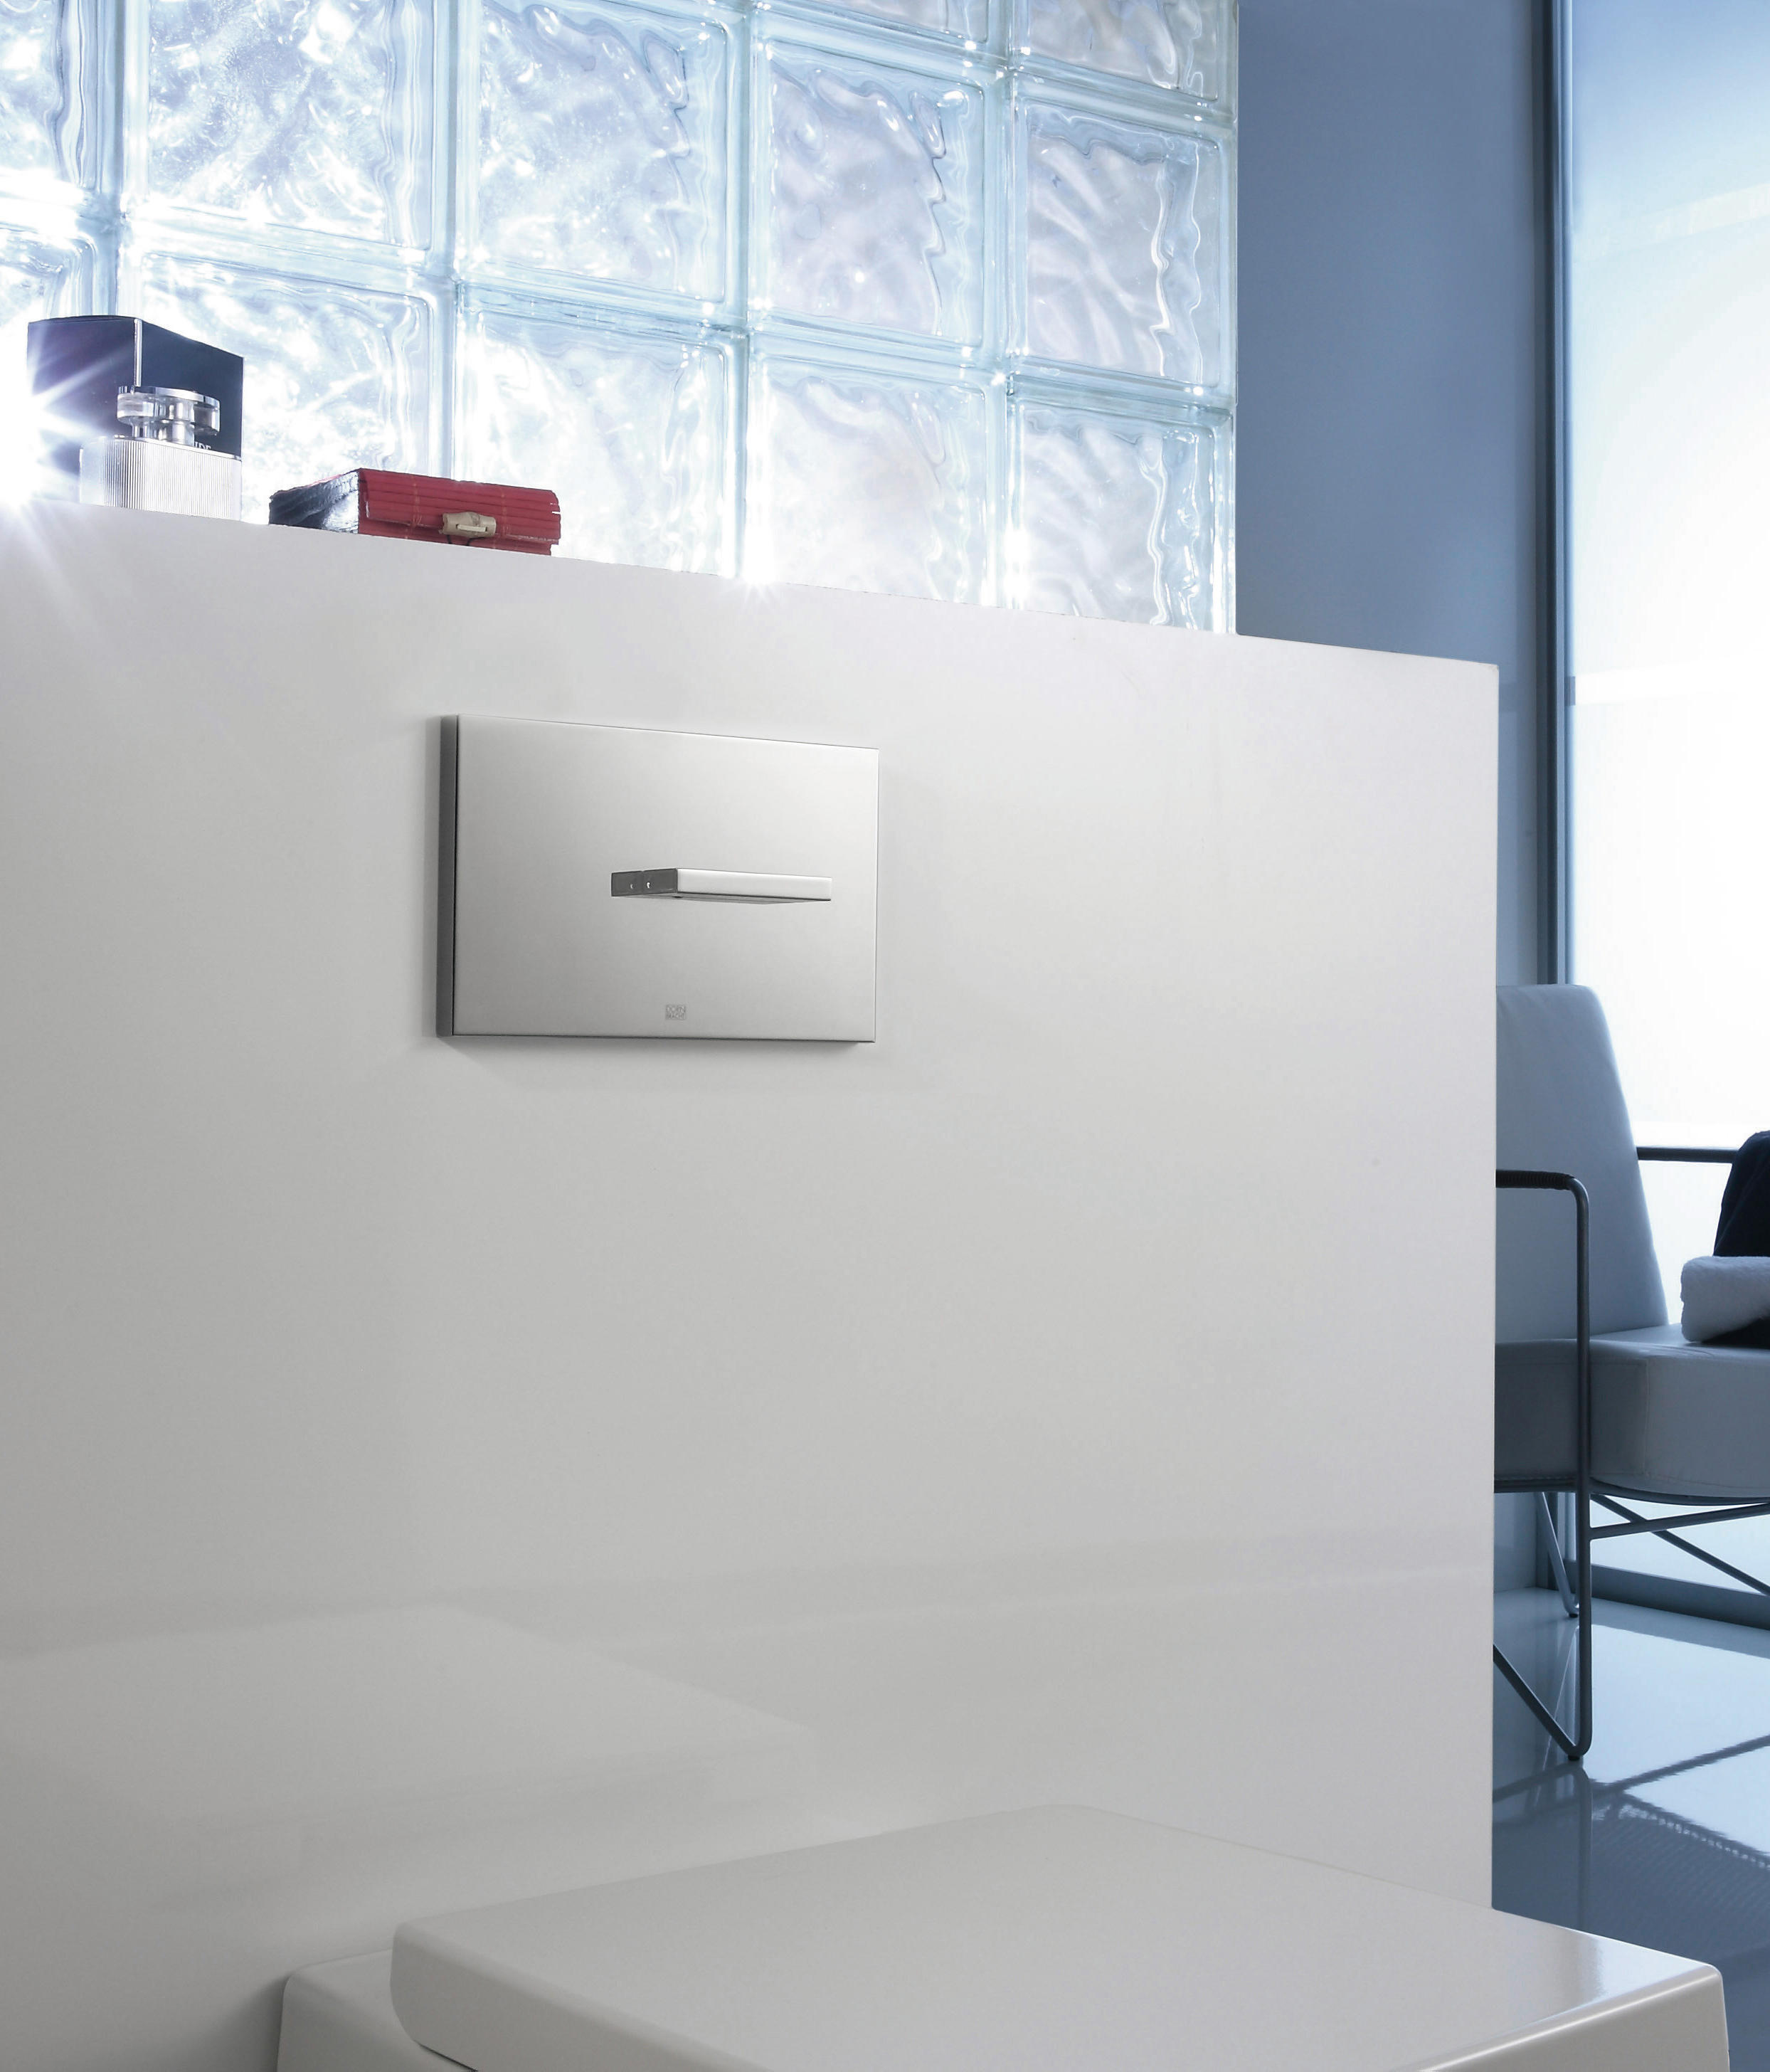 WC-ARMATUR DORNBRACHT - Flushes from TECE | Architonic